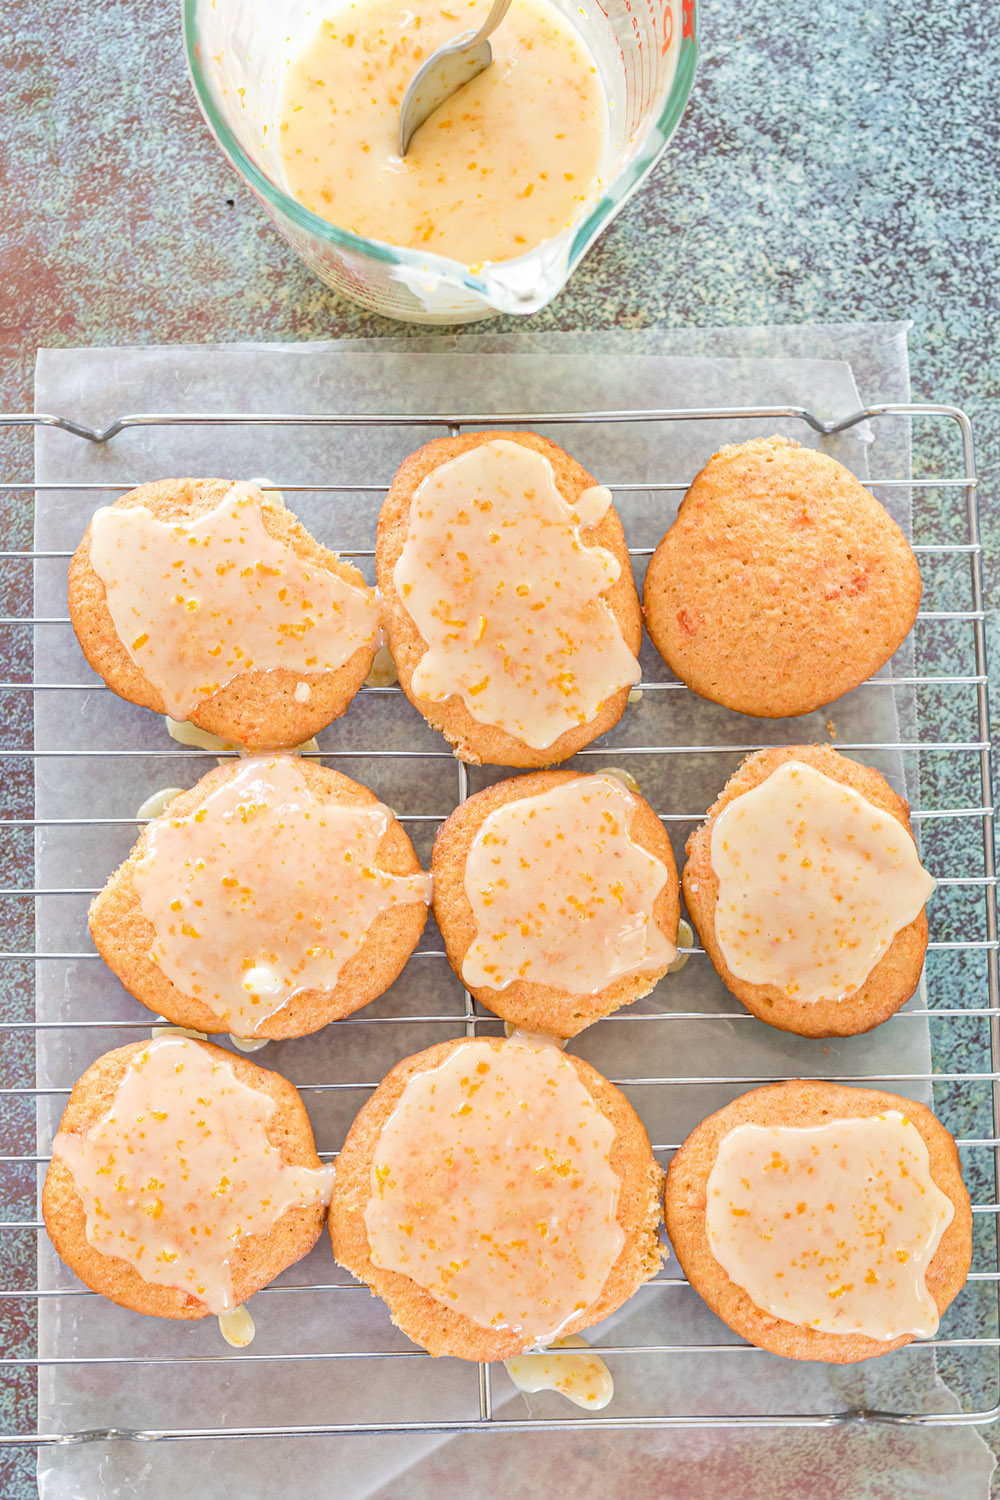 Orange cookies topped with carrot glaze.